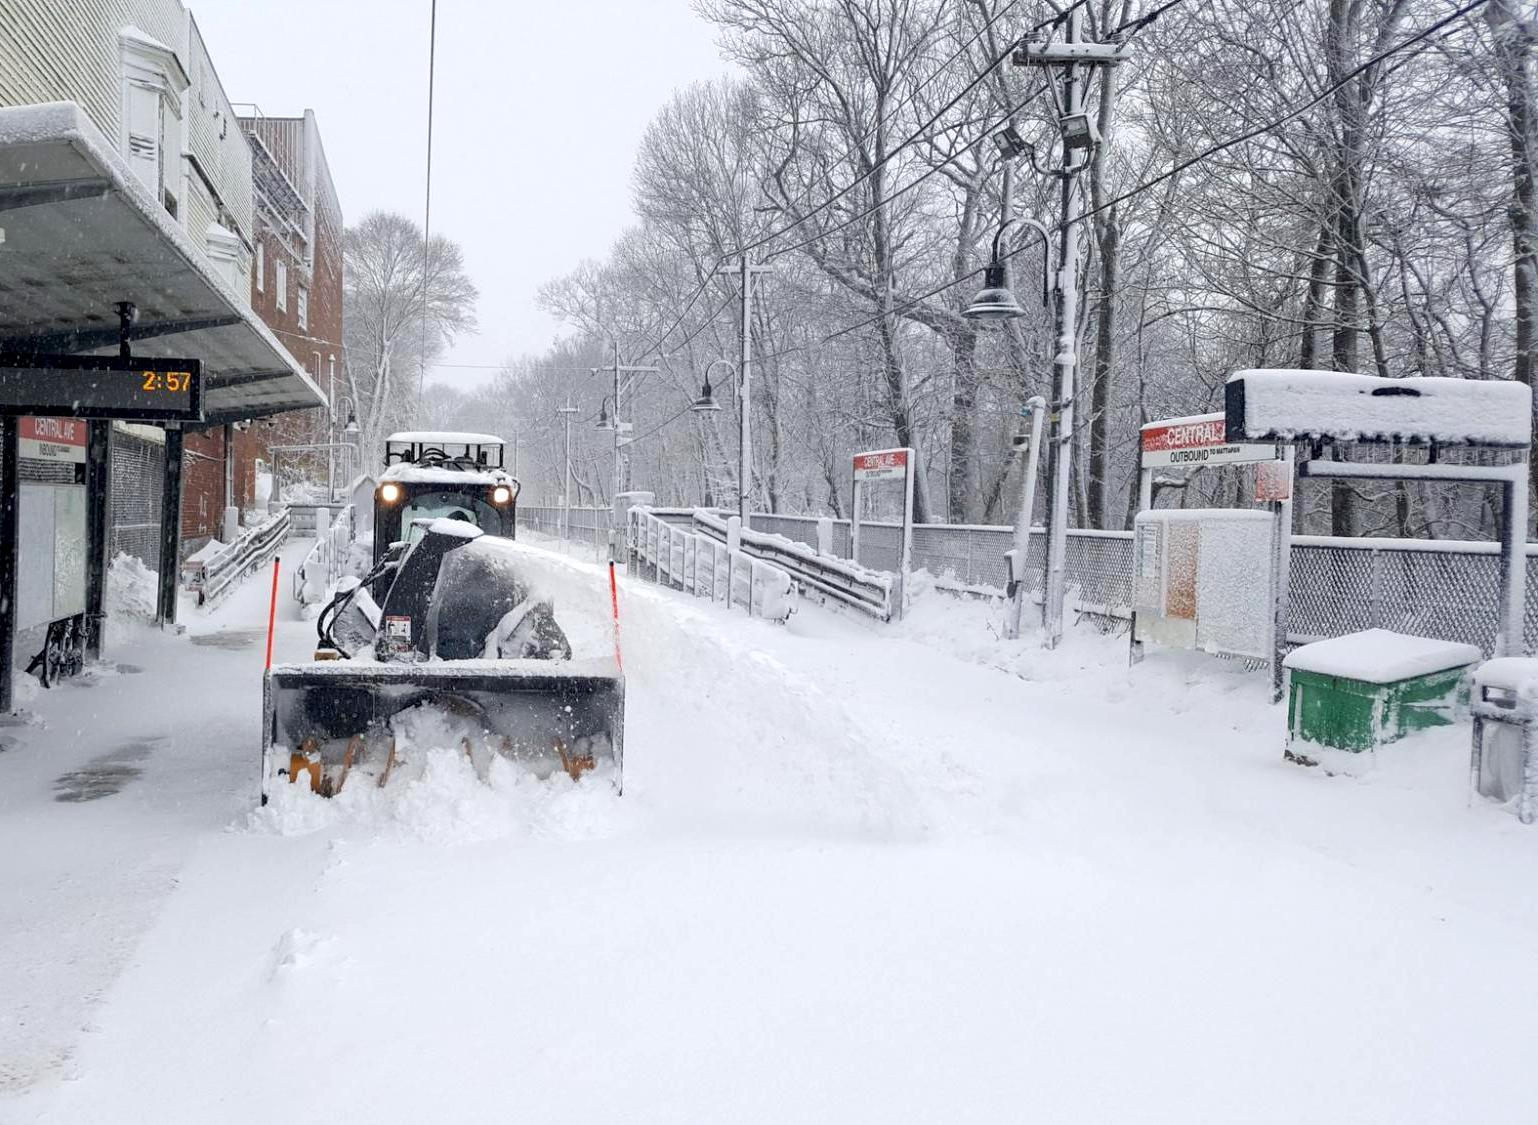 A plow clears snow from the tracks at Central Ave Station on the Mattapan Line